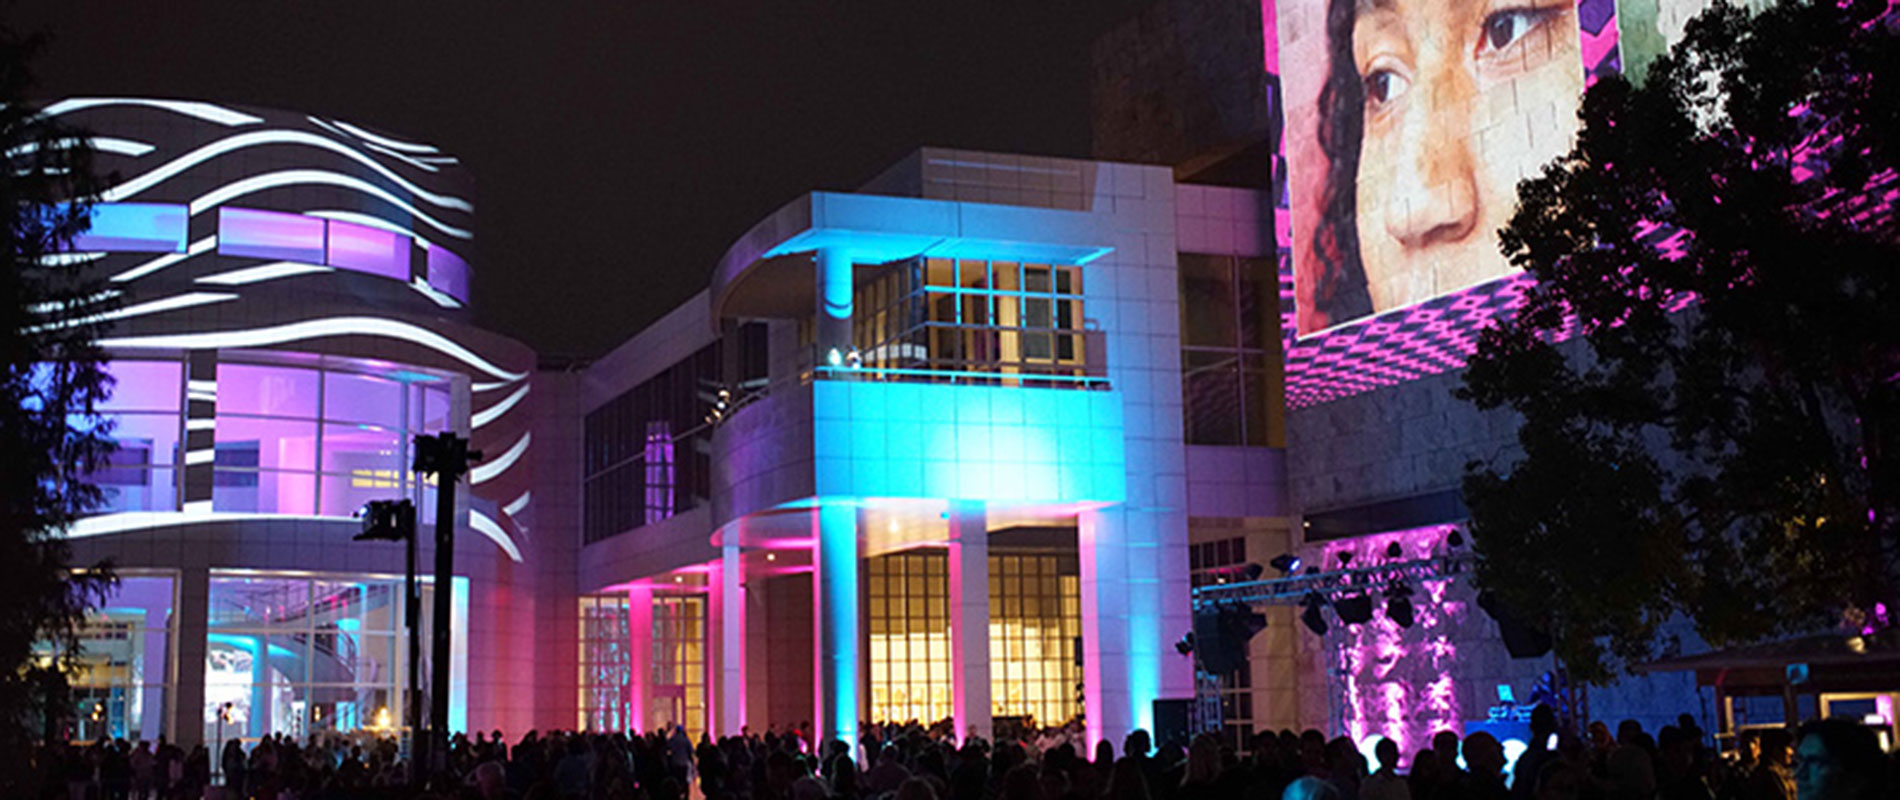 Luxury Automotive Brand Genesis  Awards $500,000 To The J. Paul Getty Museum In Support Of Arts Education & Youth Community Programs